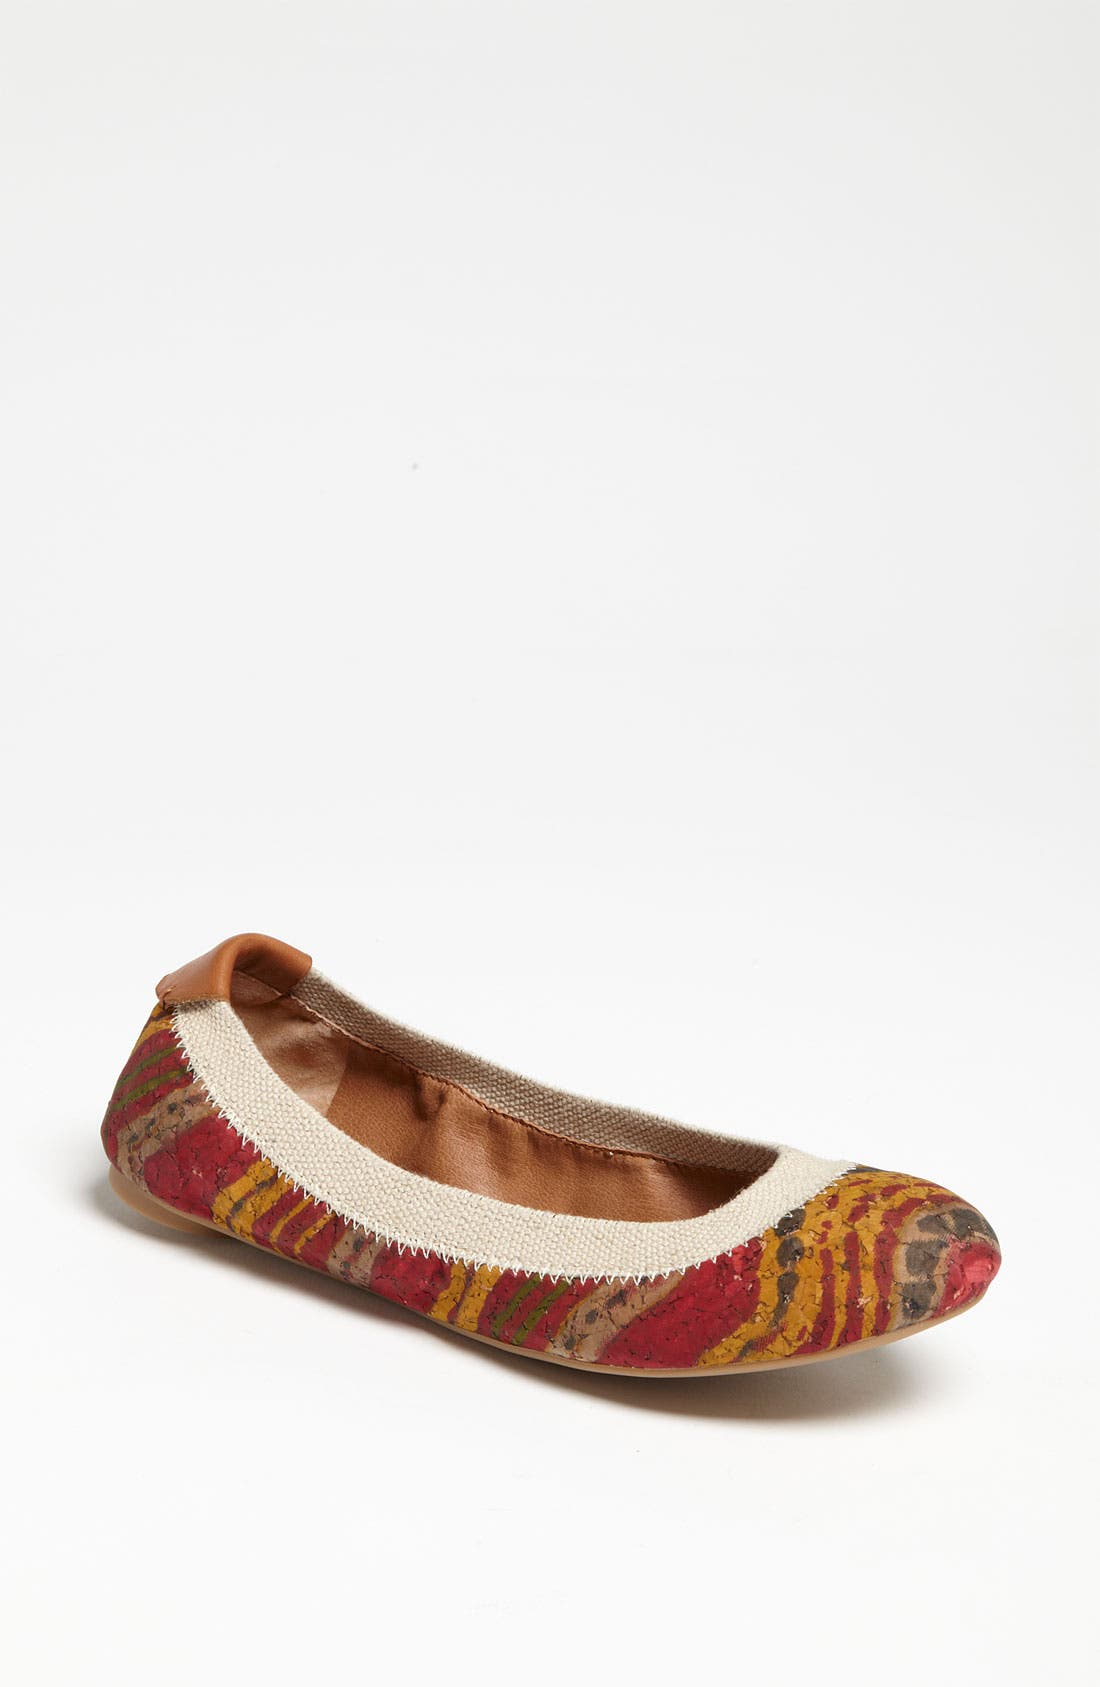 Alternate Image 1 Selected - Lucky Brand 'Evonne' Flat